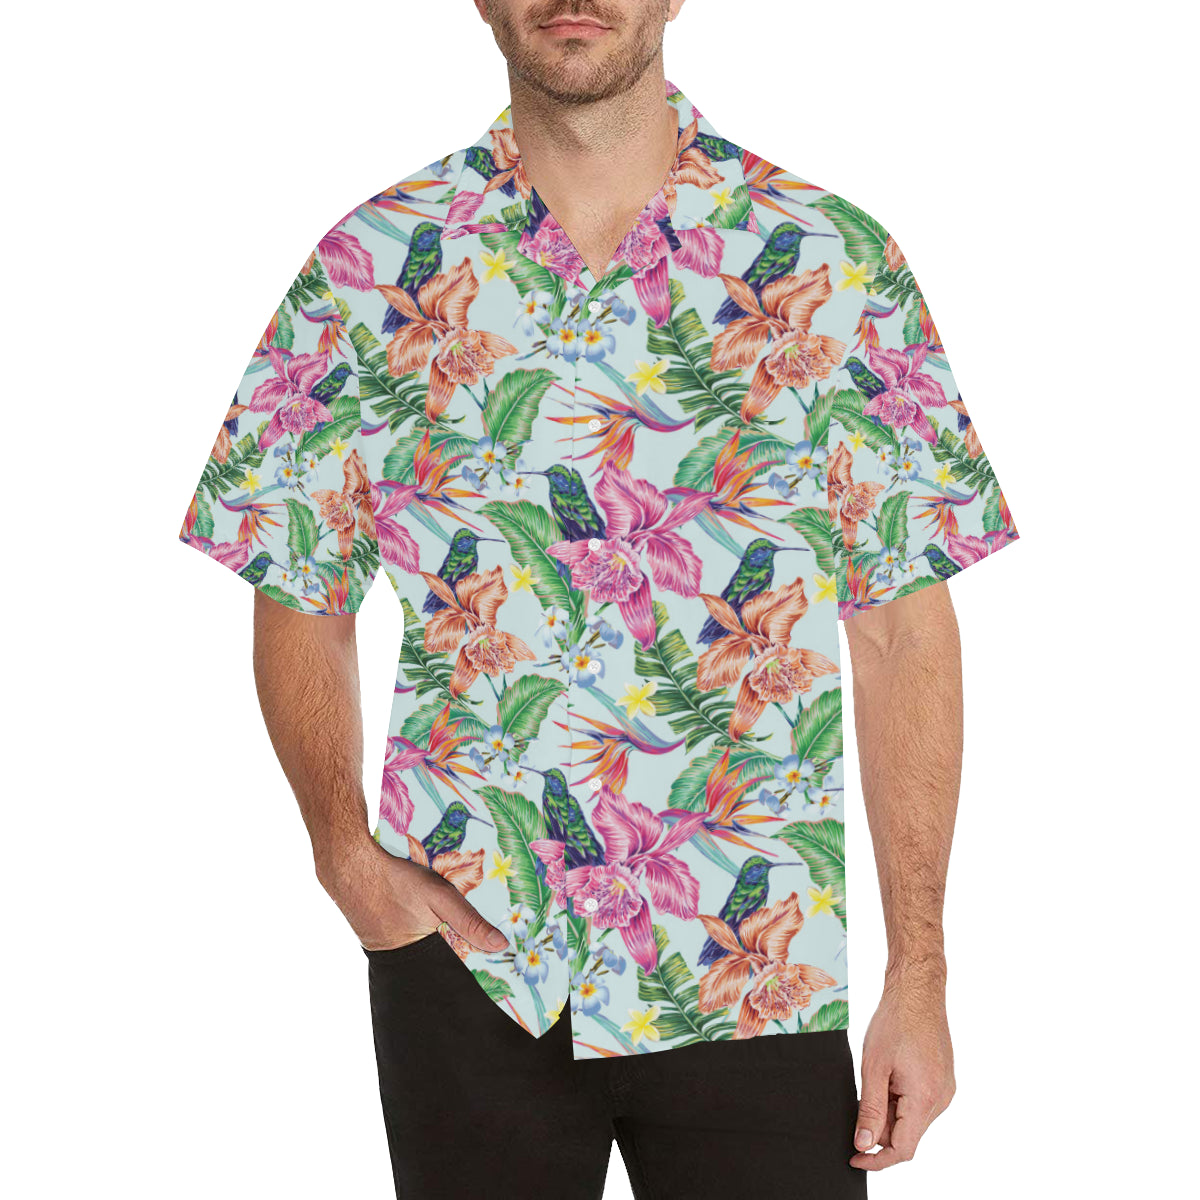 Hummingbird Tropical Pattern Print Design 05 Hawaiian Shirt